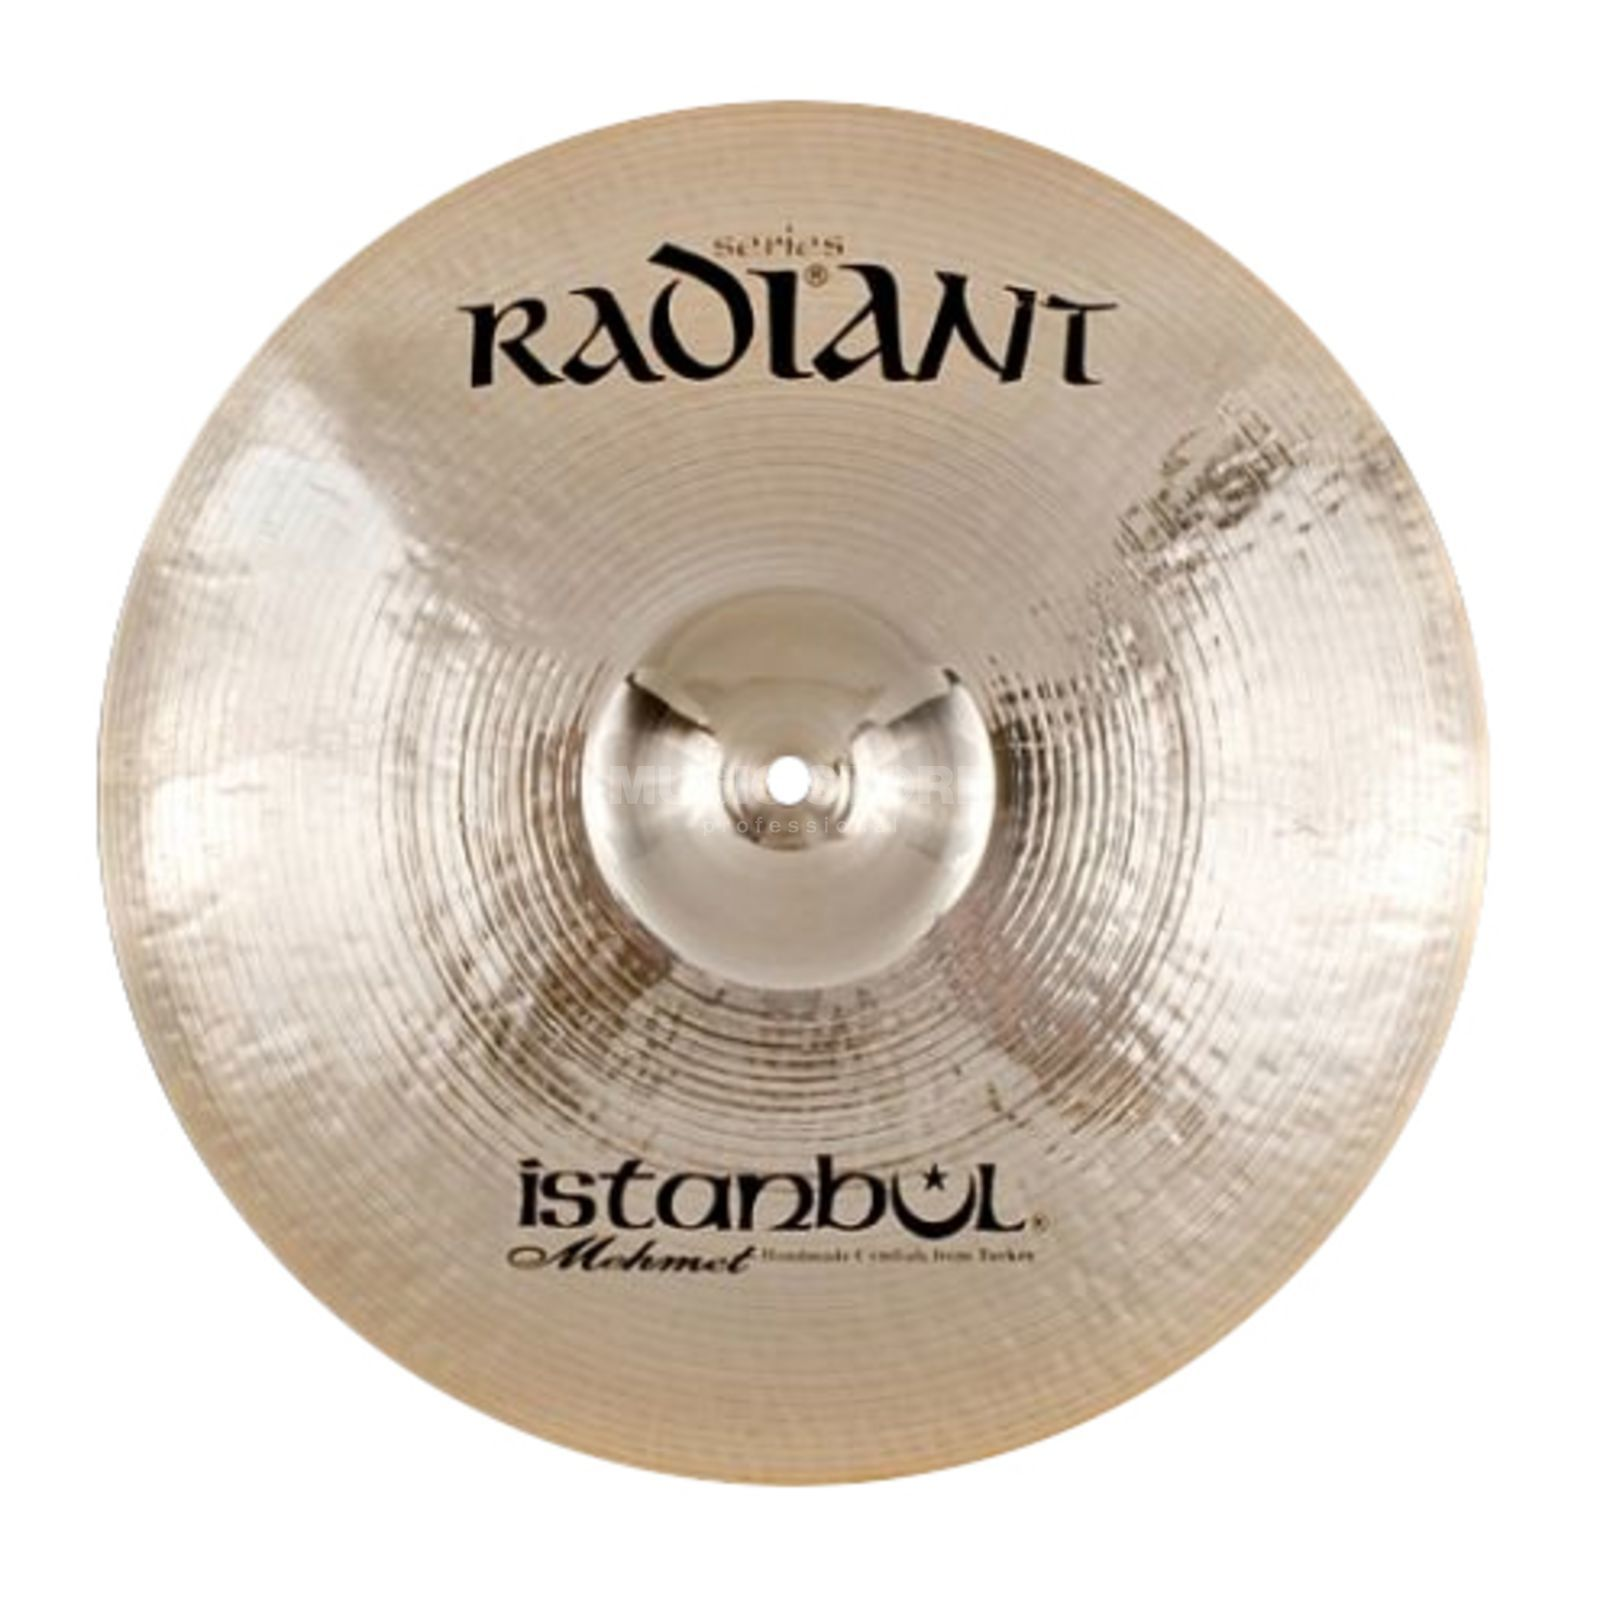 "Istanbul Radiant Rock Crash 17"", R-CRR17 Productafbeelding"